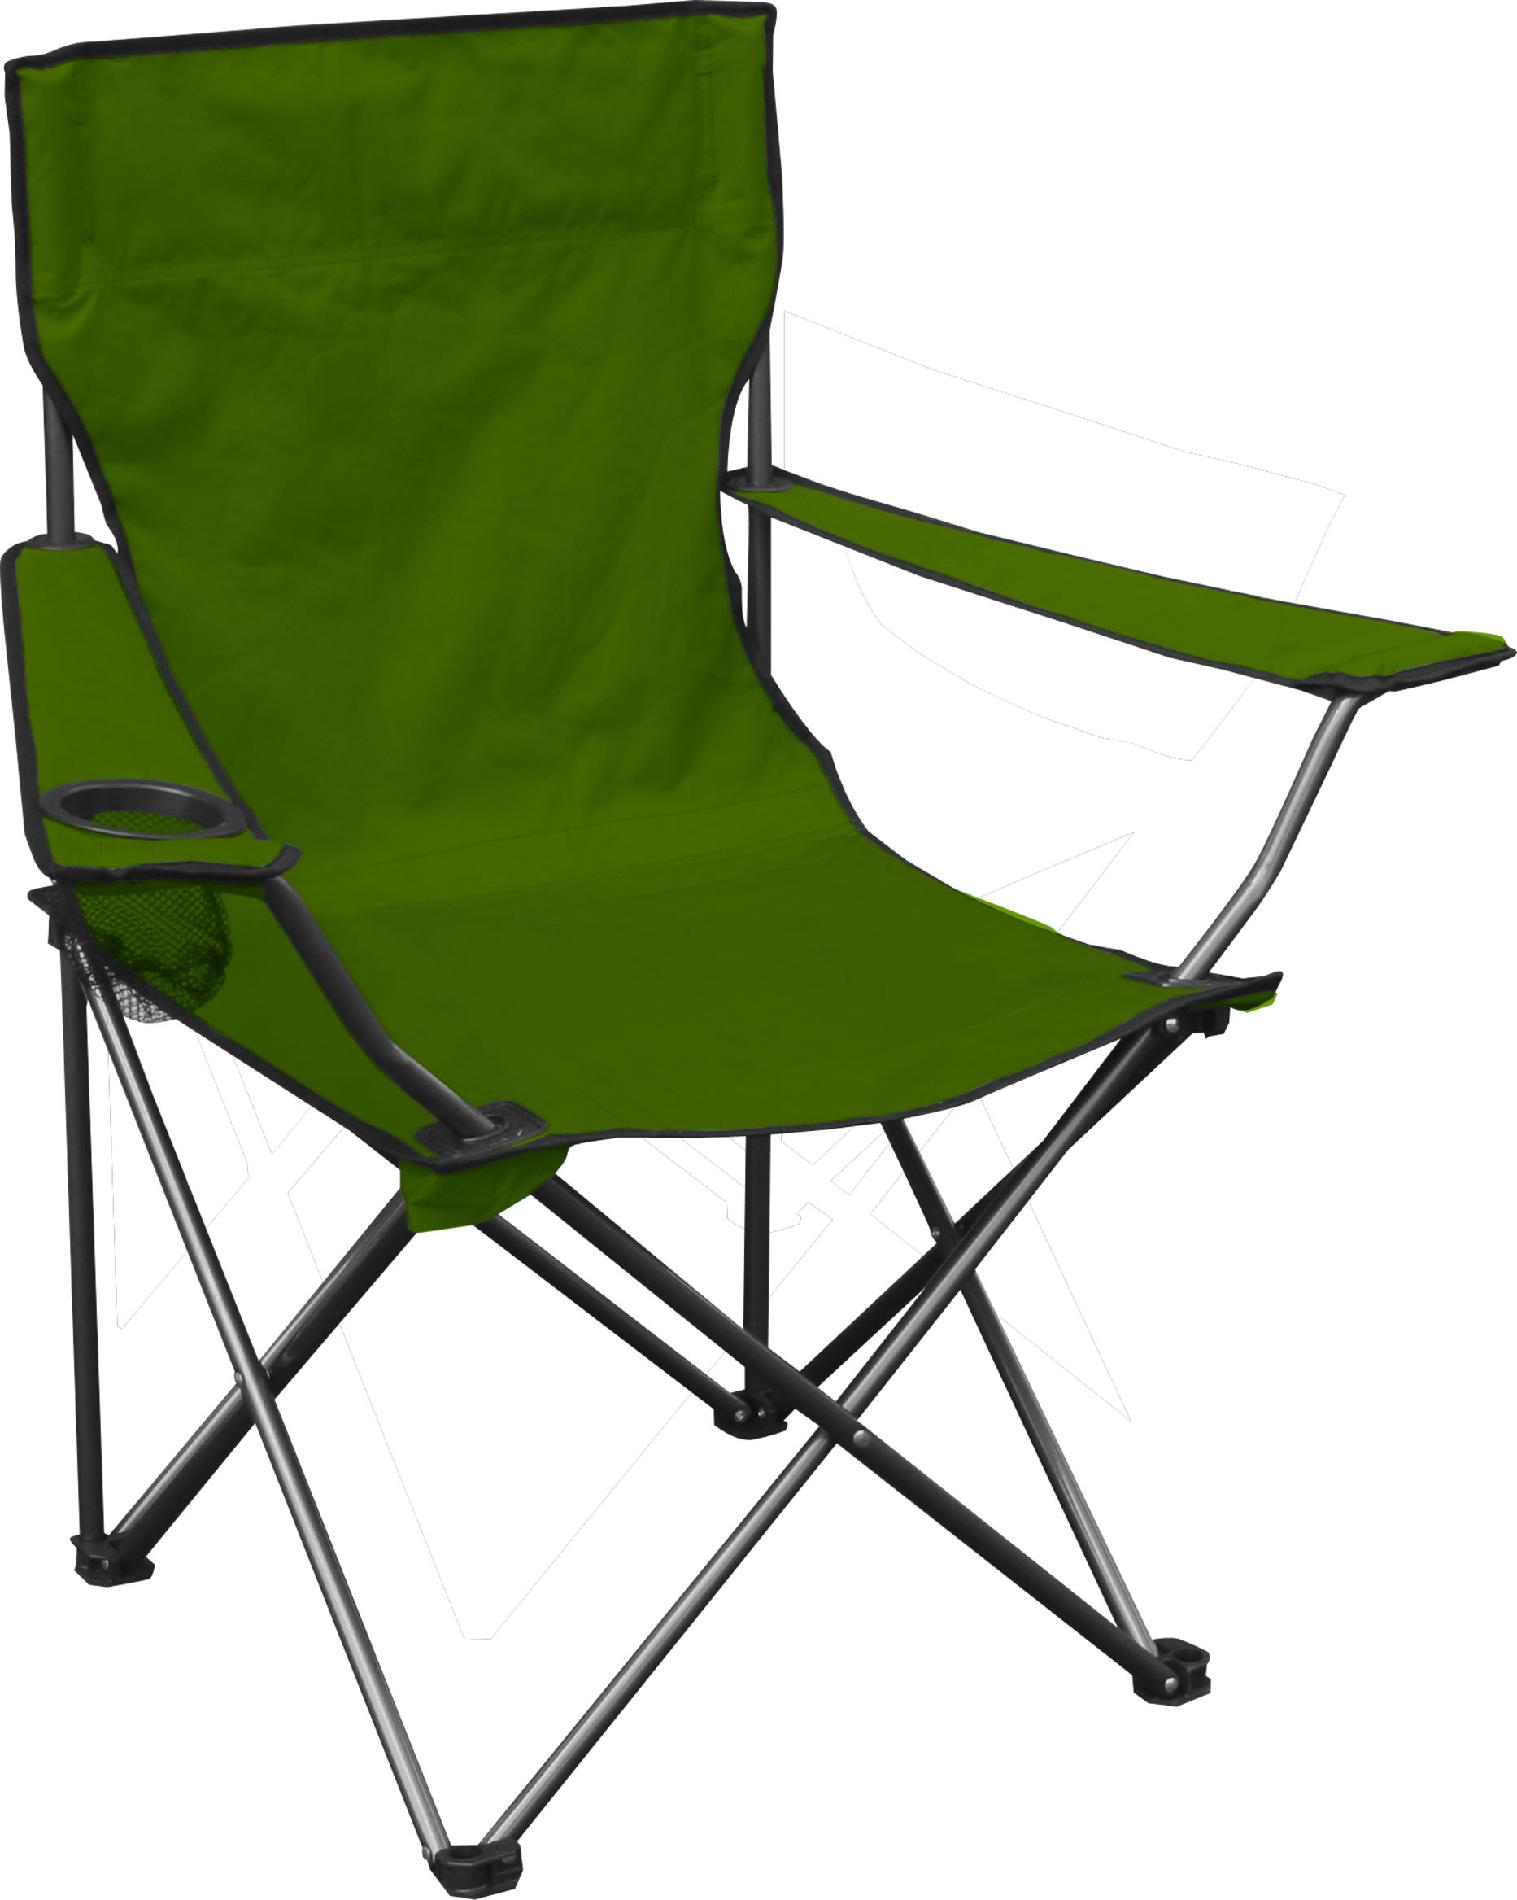 Camp Chair With Canopy Quik Shade Folding Quad Chair Moss Green